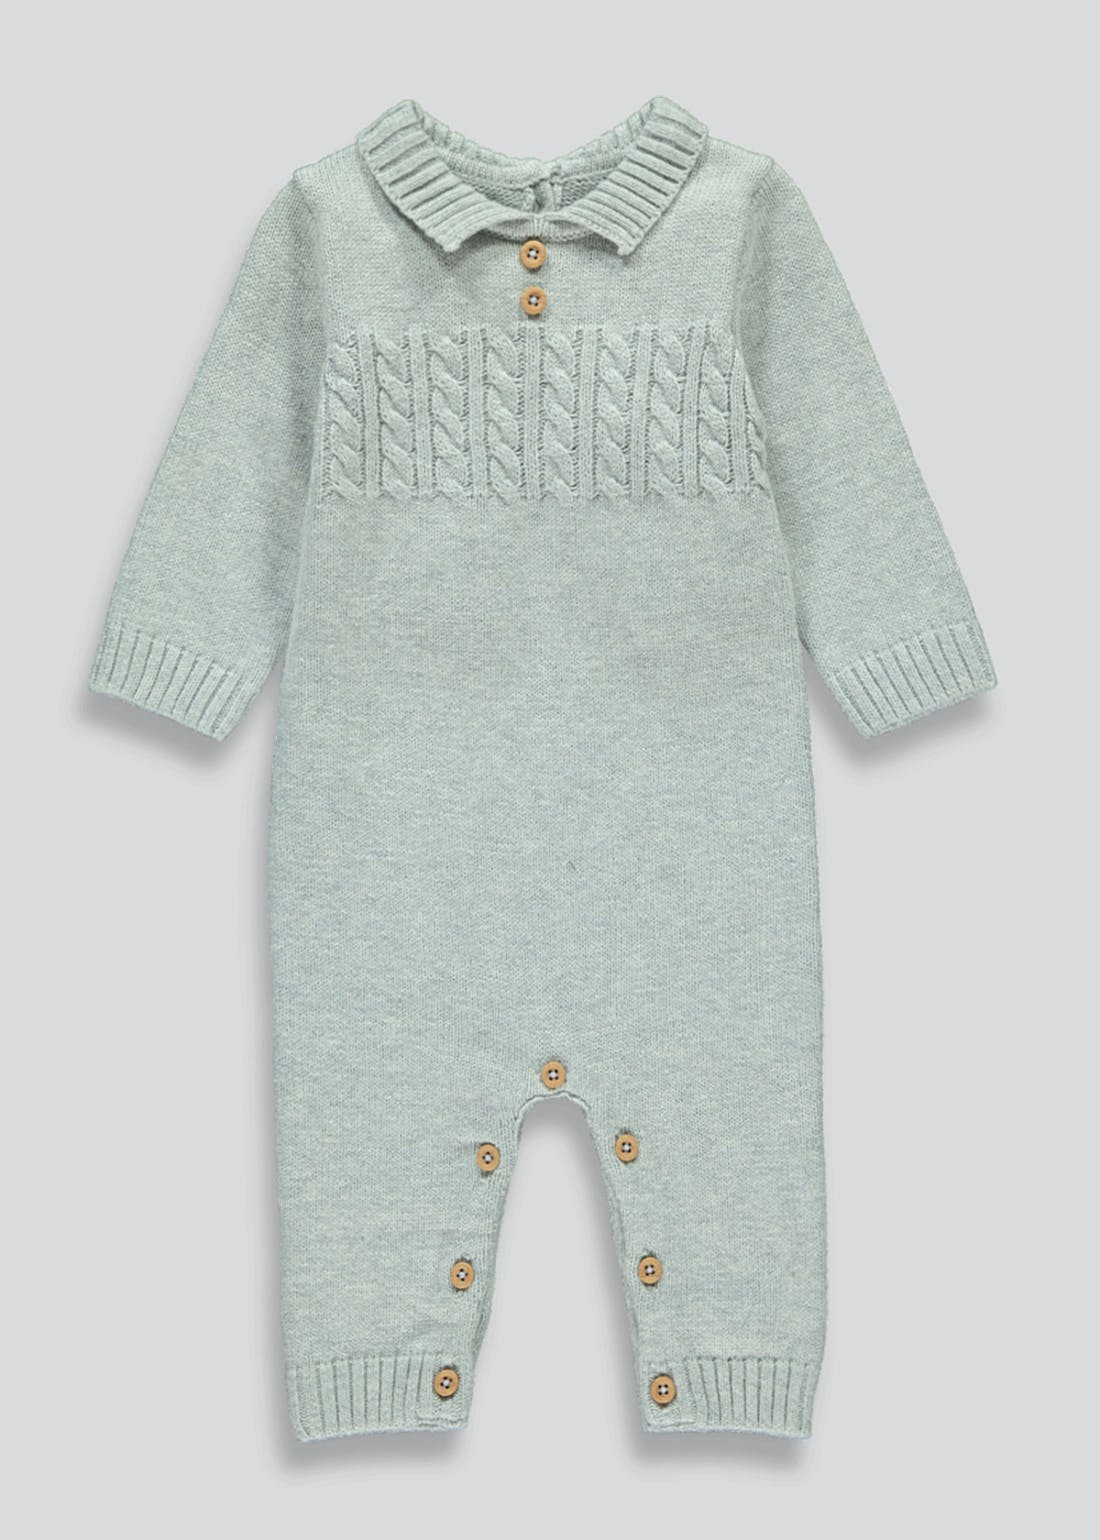 Unisex Knitted Baby Grow (Tiny Baby-18mnths)